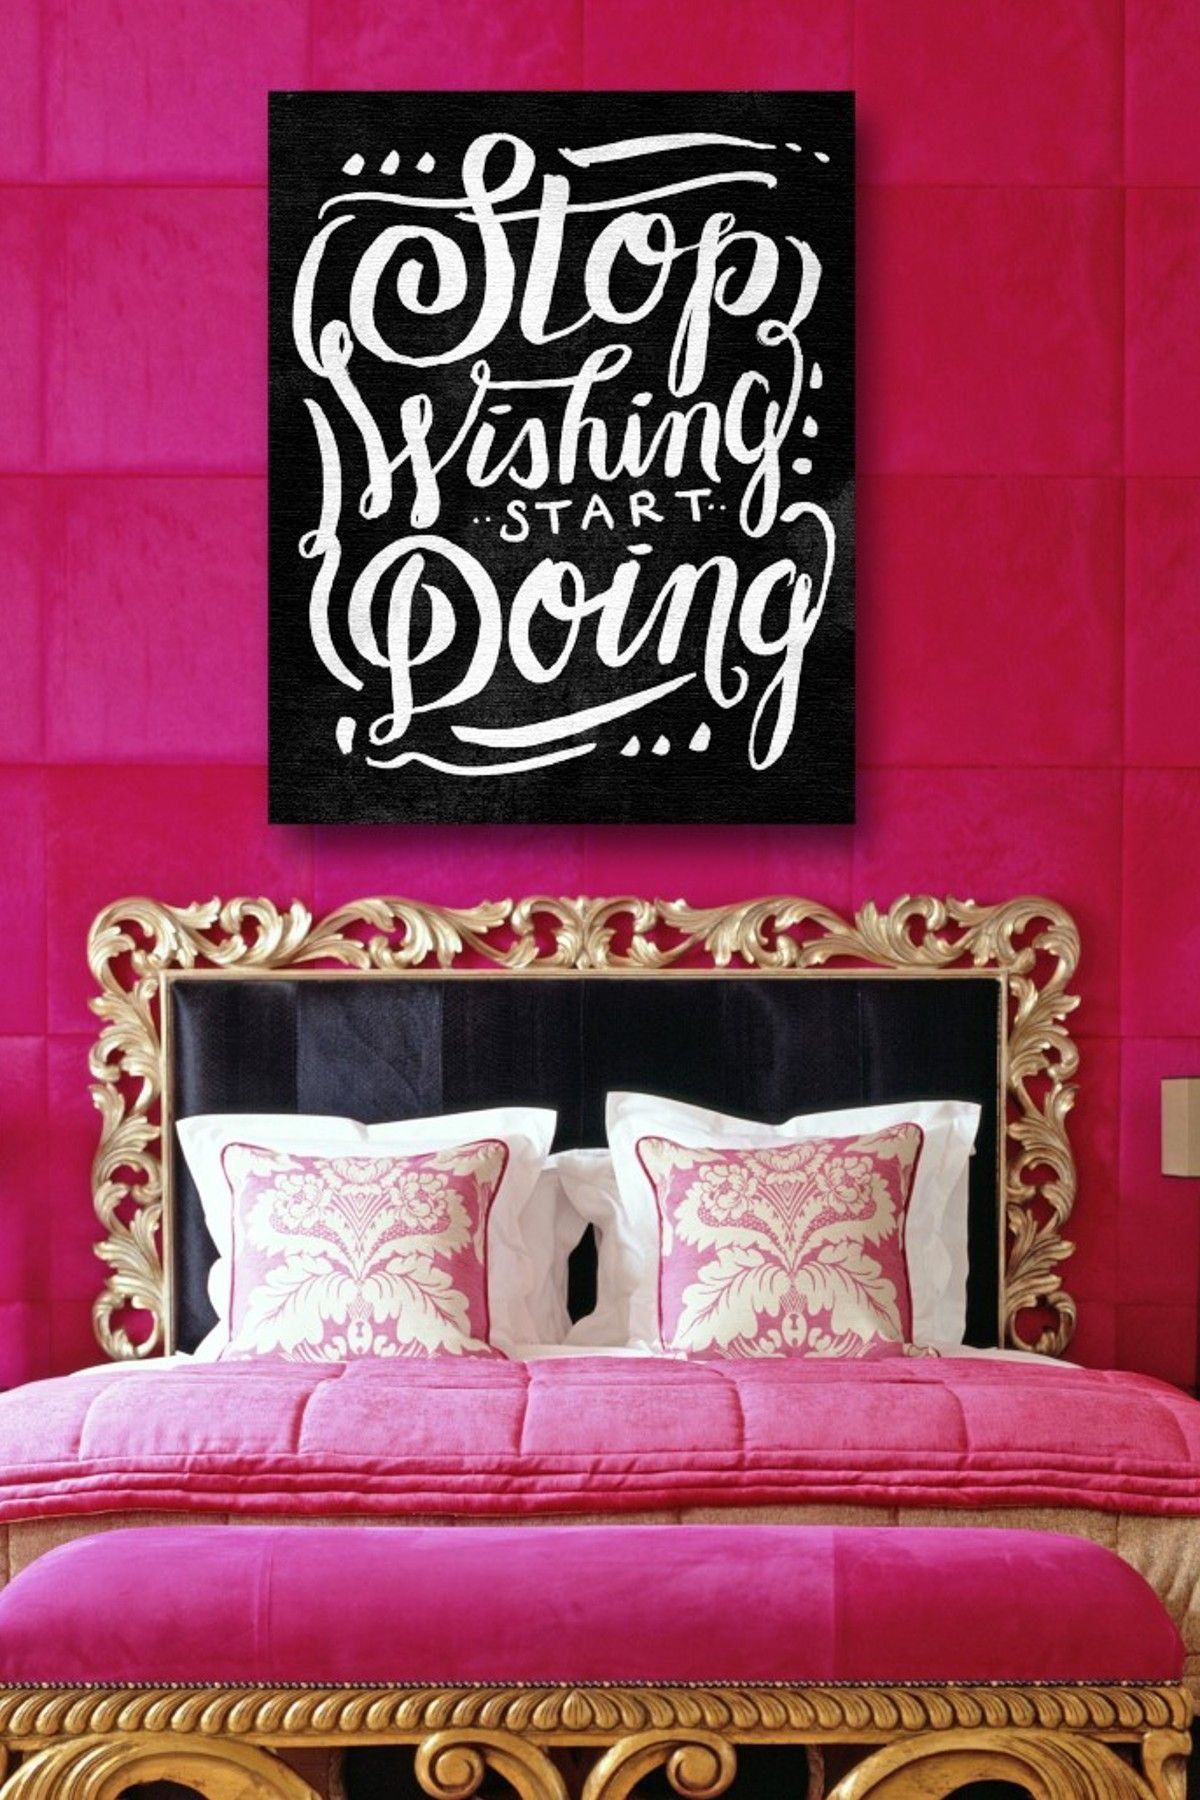 Pin By Angelica On Dream Beauty Room Ideas Bedroom Wall Decor Above Bed Wall Decor Bedroom Hot Pink Furniture